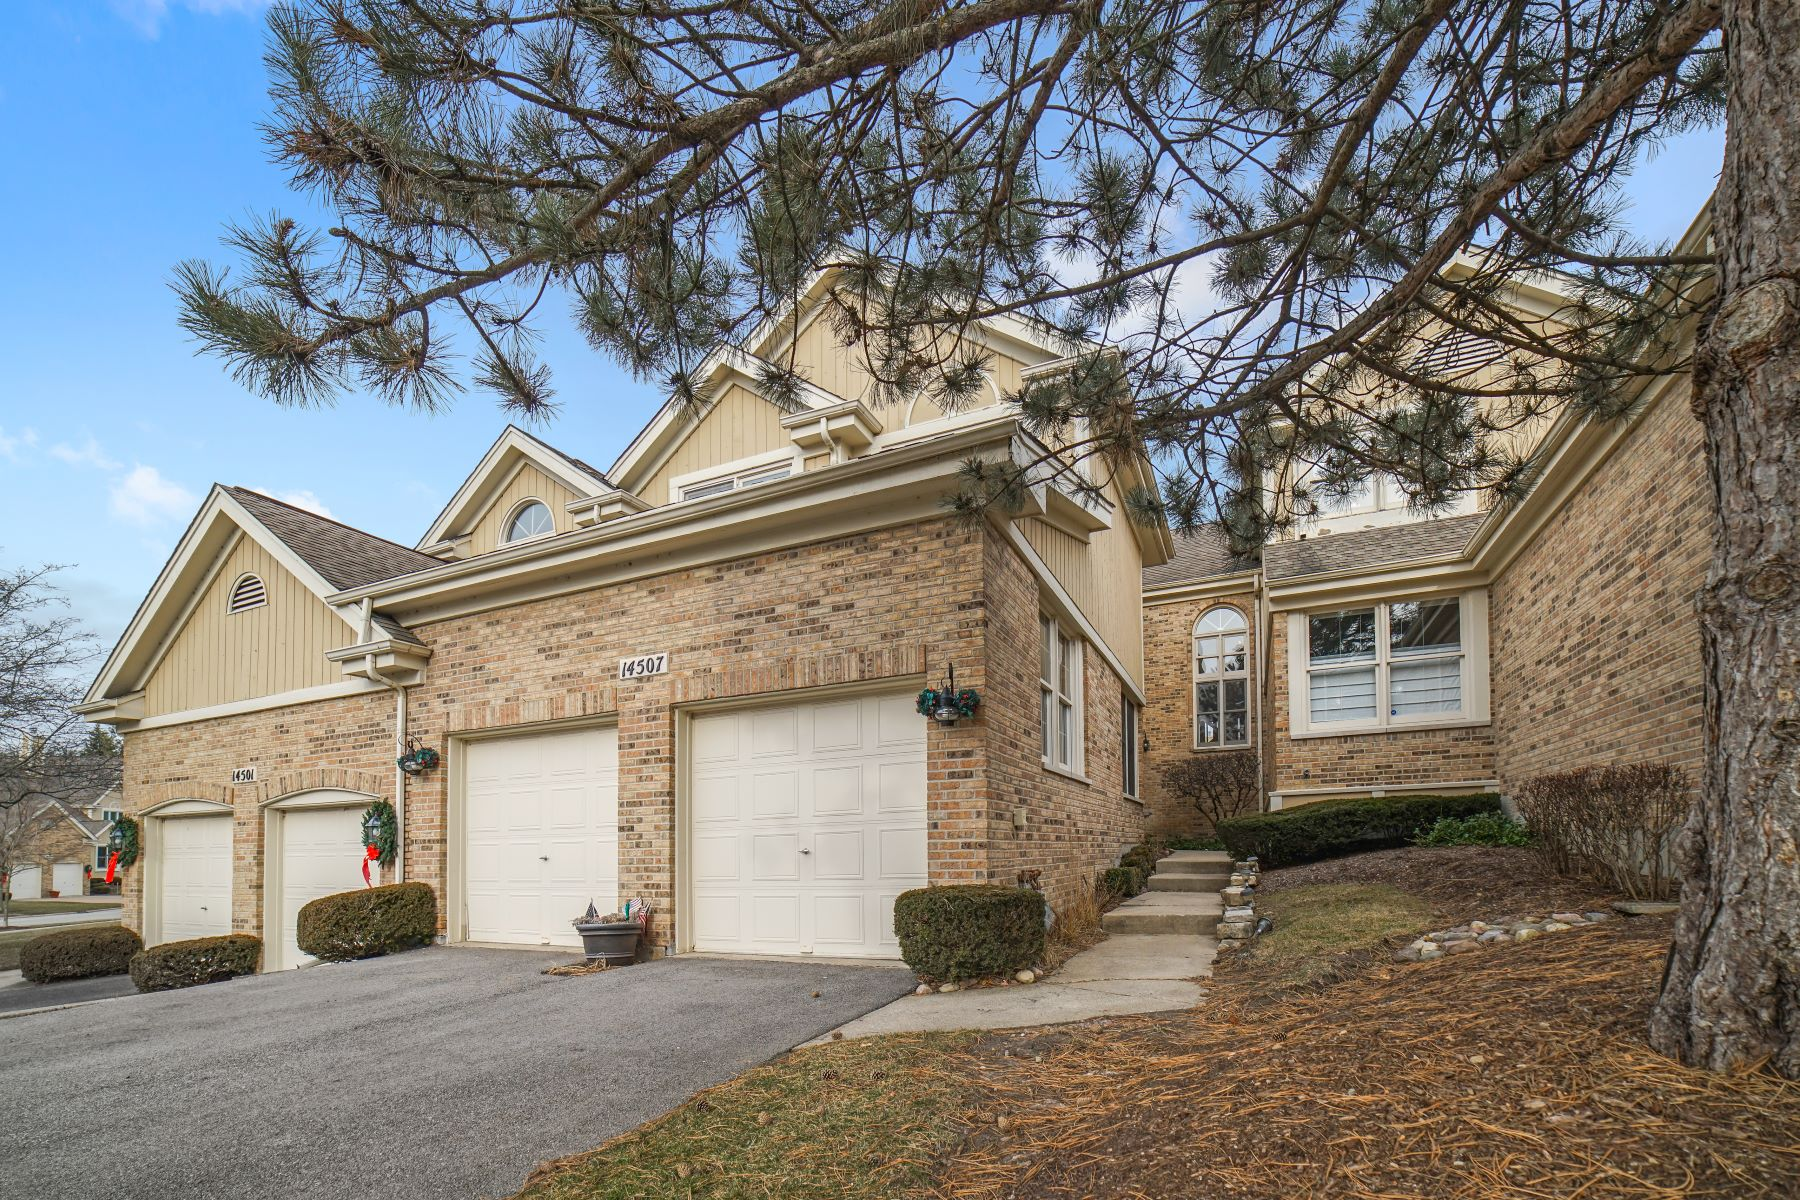 Single Family Home for Sale at Great Town-home in Crystal Tree 14507 Golf Road Orland Park, Illinois 60462 United States